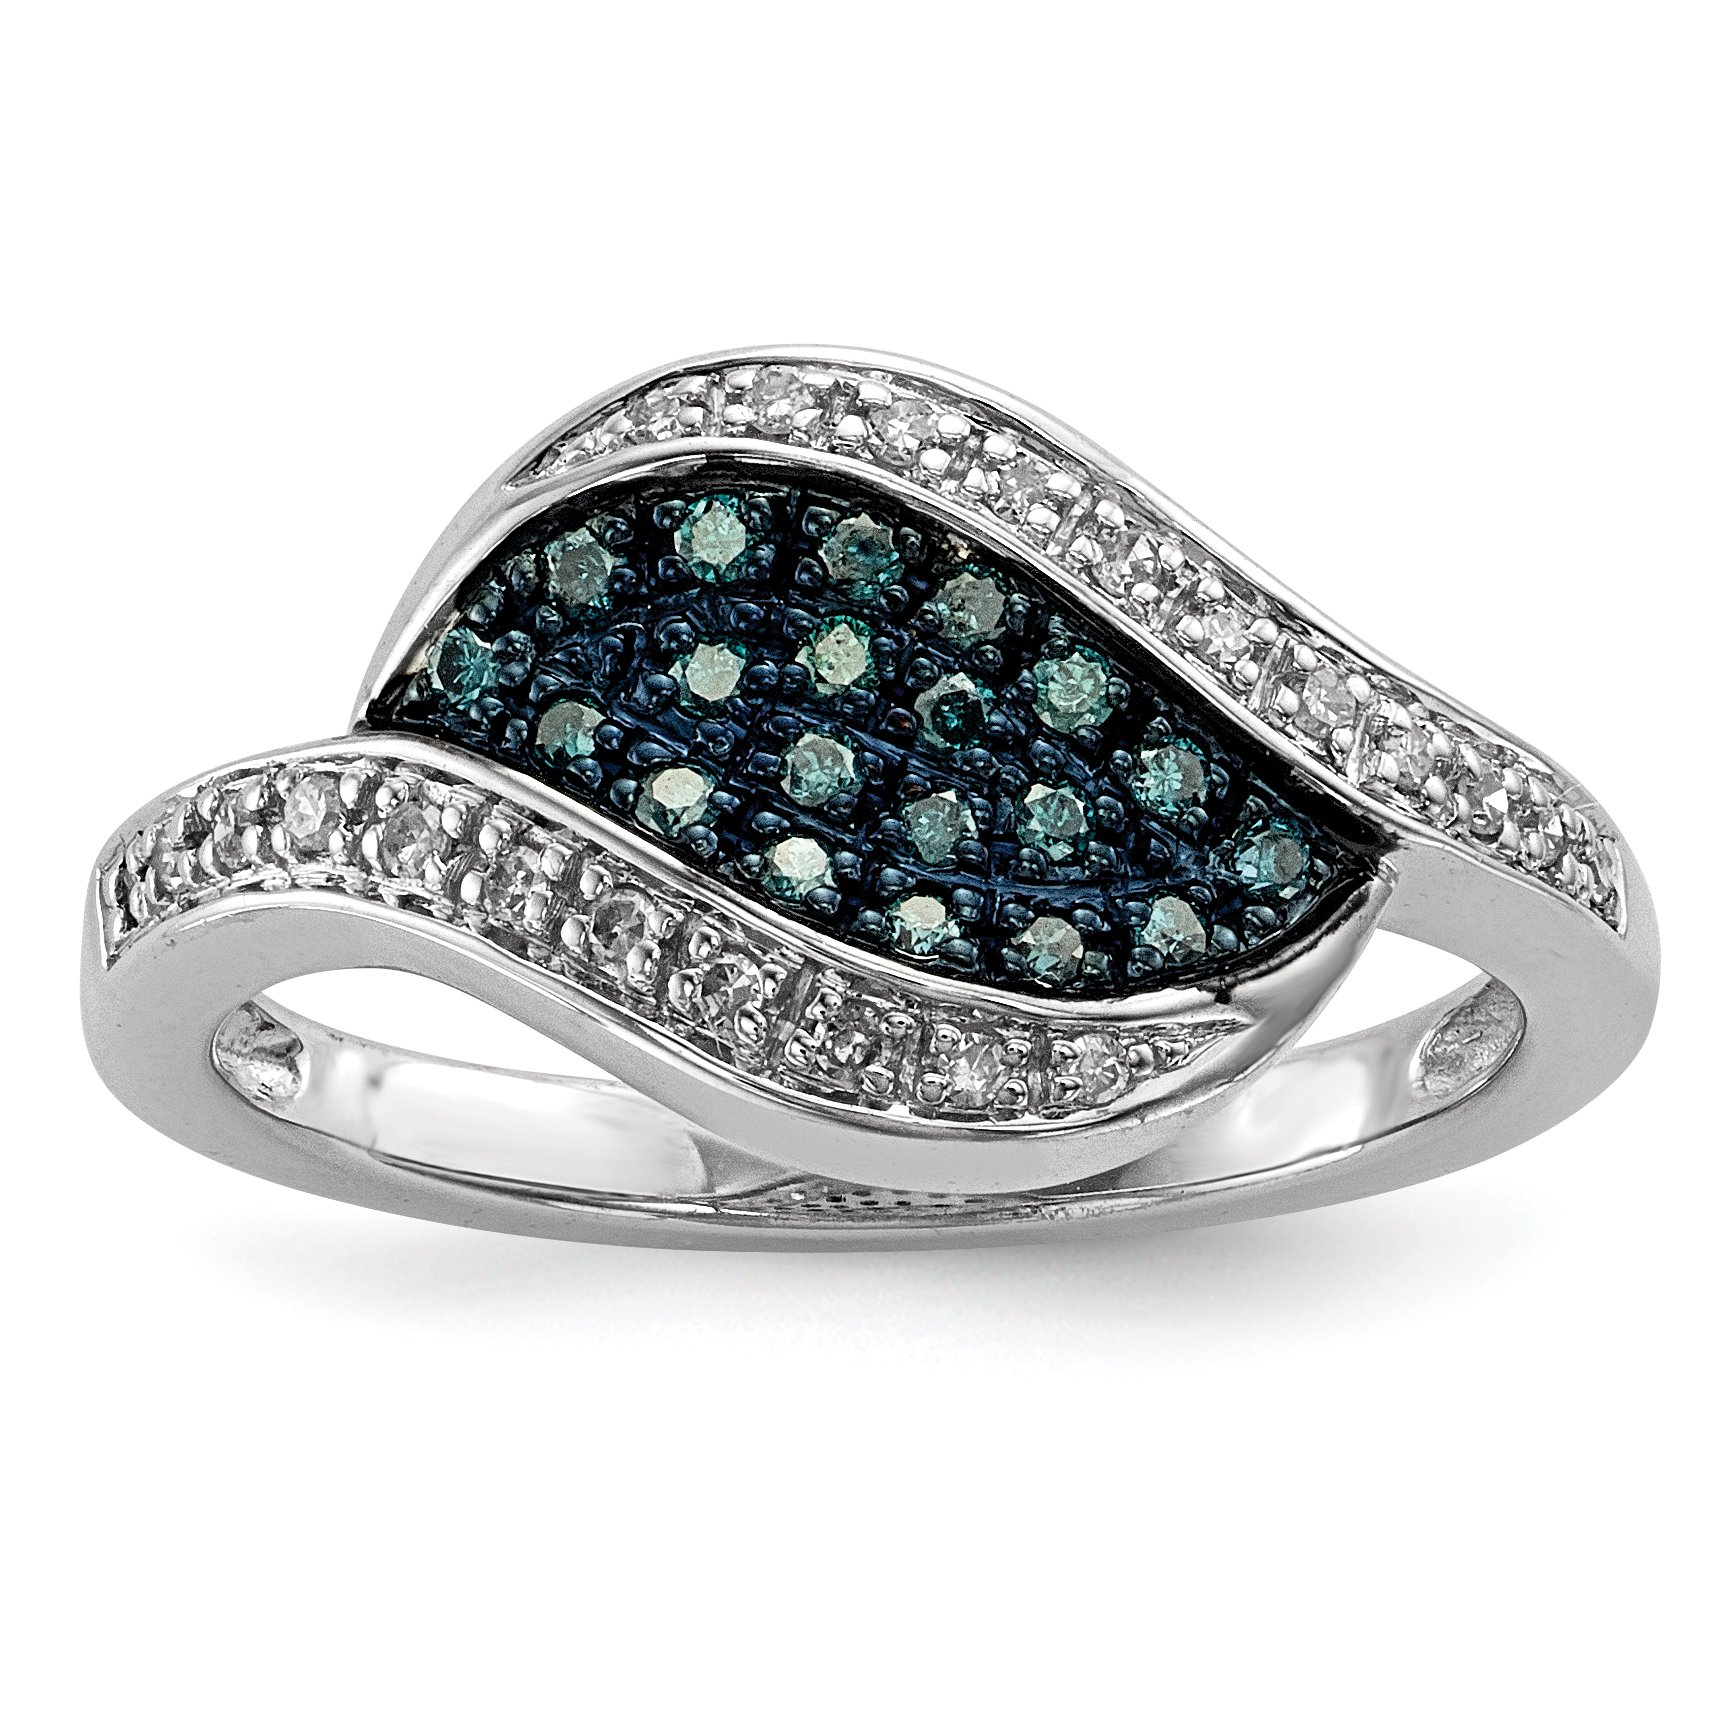 ICE CARATS 925 Sterling Silver Blue Diamond Marquise Band Ring Size 7.00 Fine Jewelry Gift Set For Women Heart